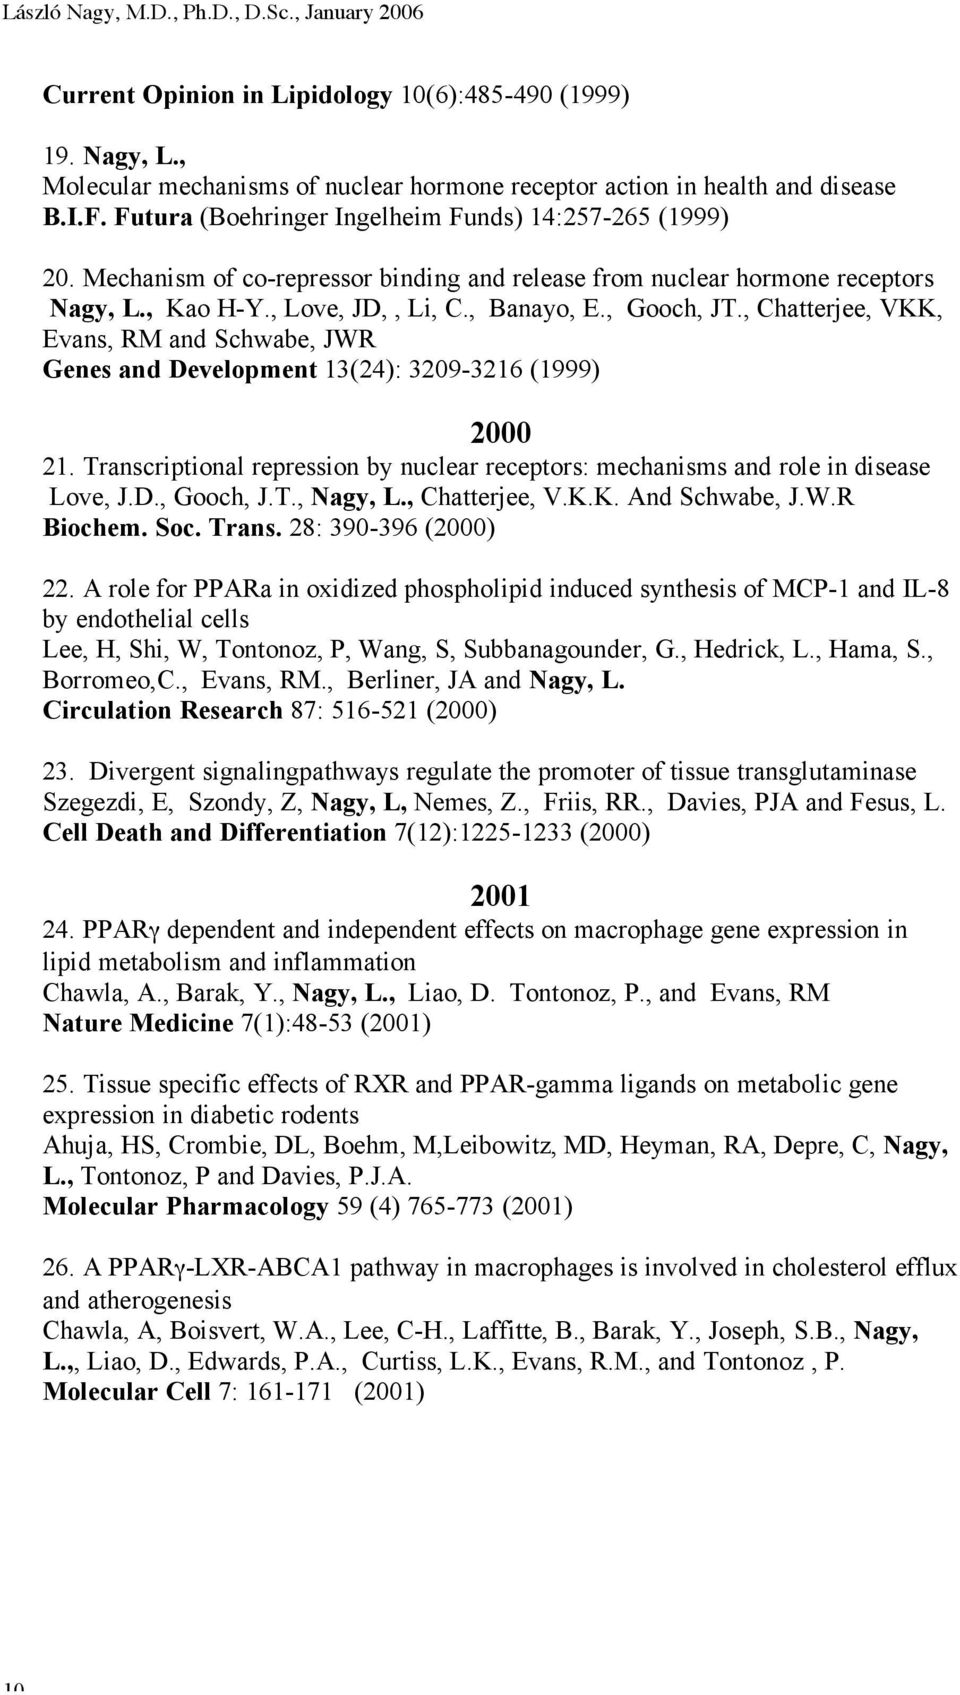 , Chatterjee, VKK, Evans, RM and Schwabe, JWR Genes and Development 13(24): 3209-3216 (1999) 2000 21. Transcriptional repression by nuclear receptors: mechanisms and role in disease Love, J.D., Gooch, J.